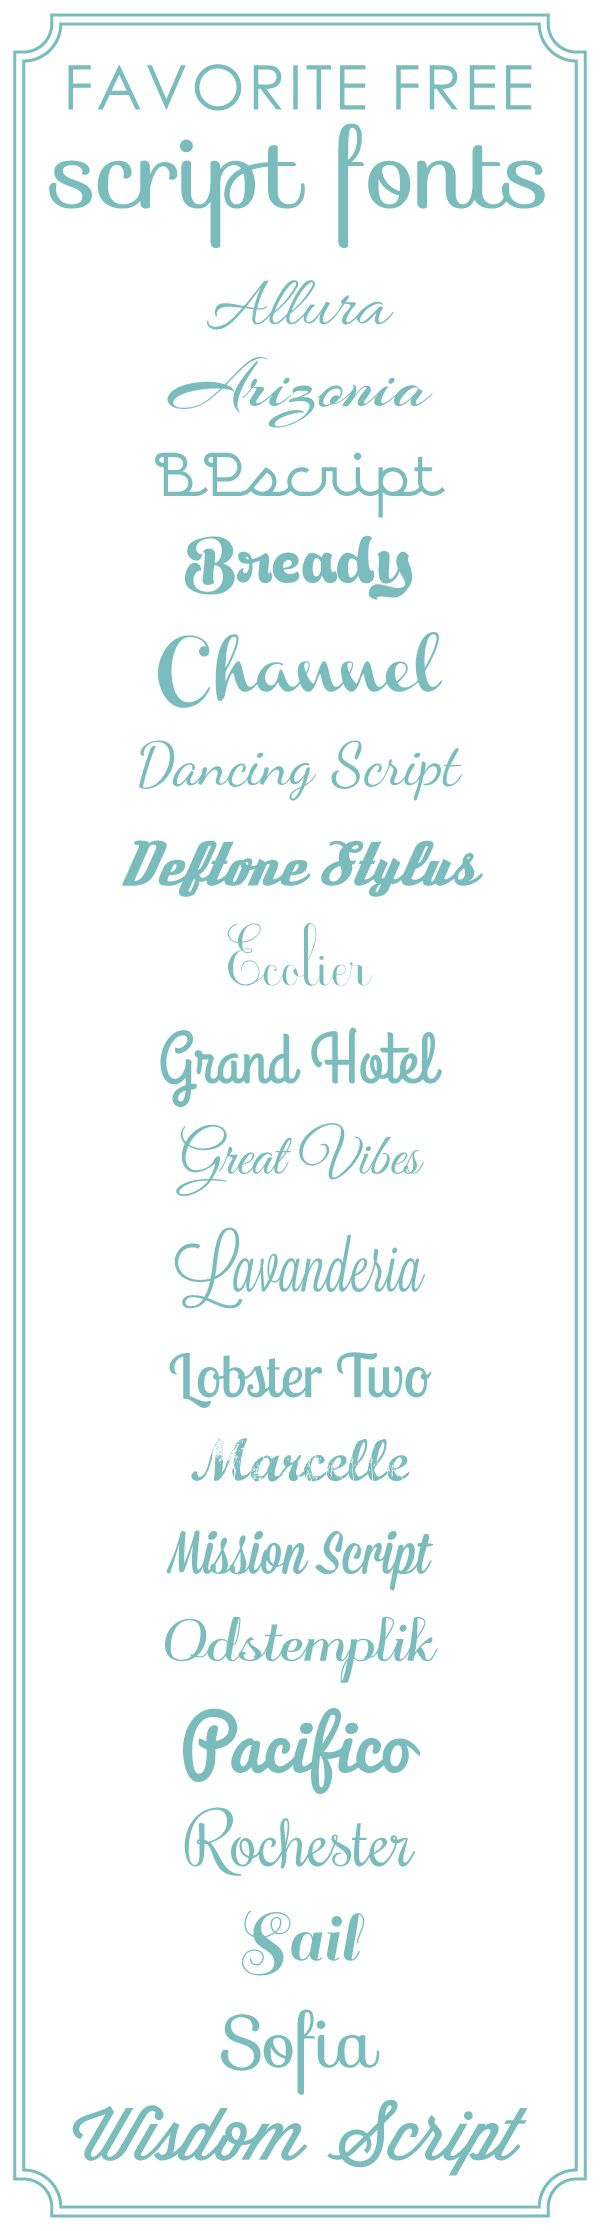 Favorite Free Scrapbook Fonts | Script from @SuzyQ Scraps